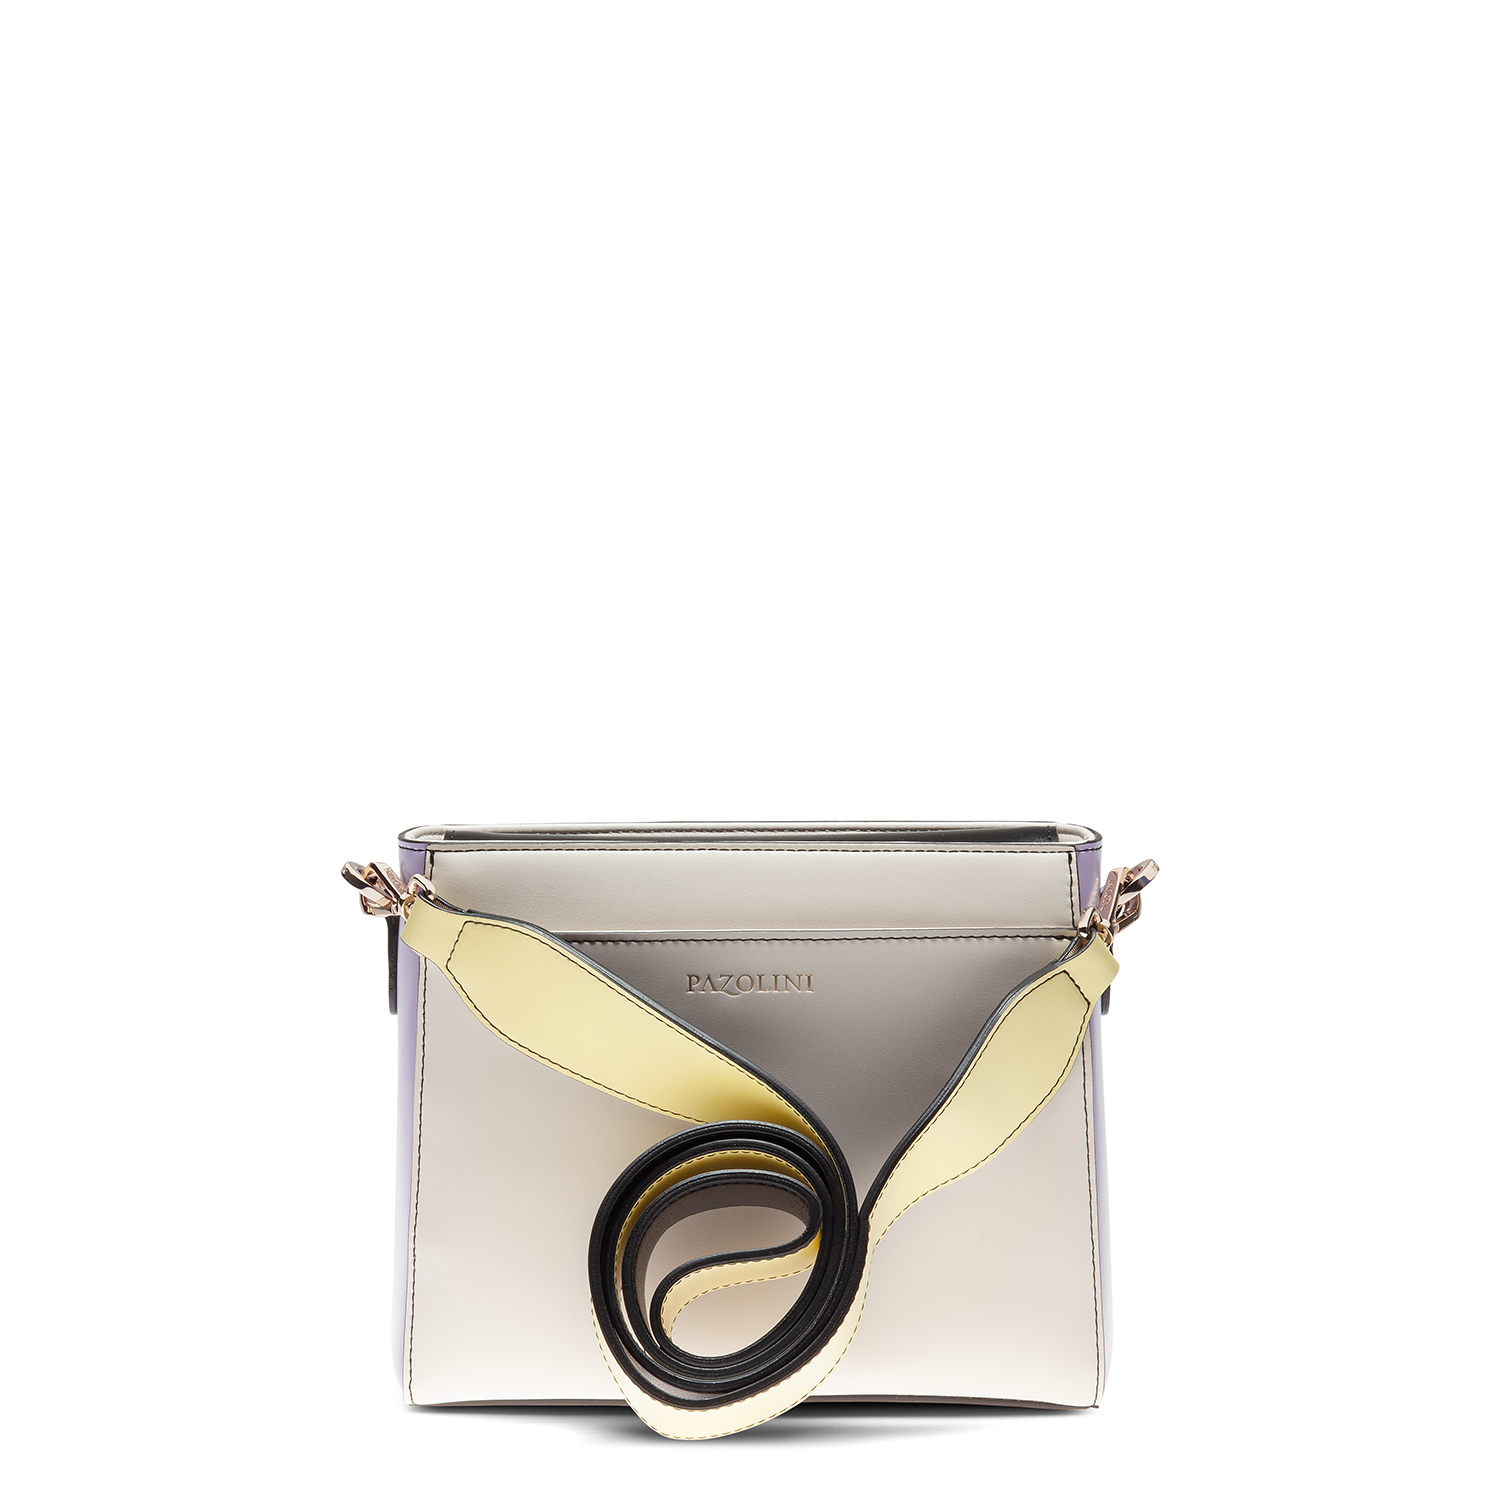 Women's bag PAZOLINI BS-N0935-20M